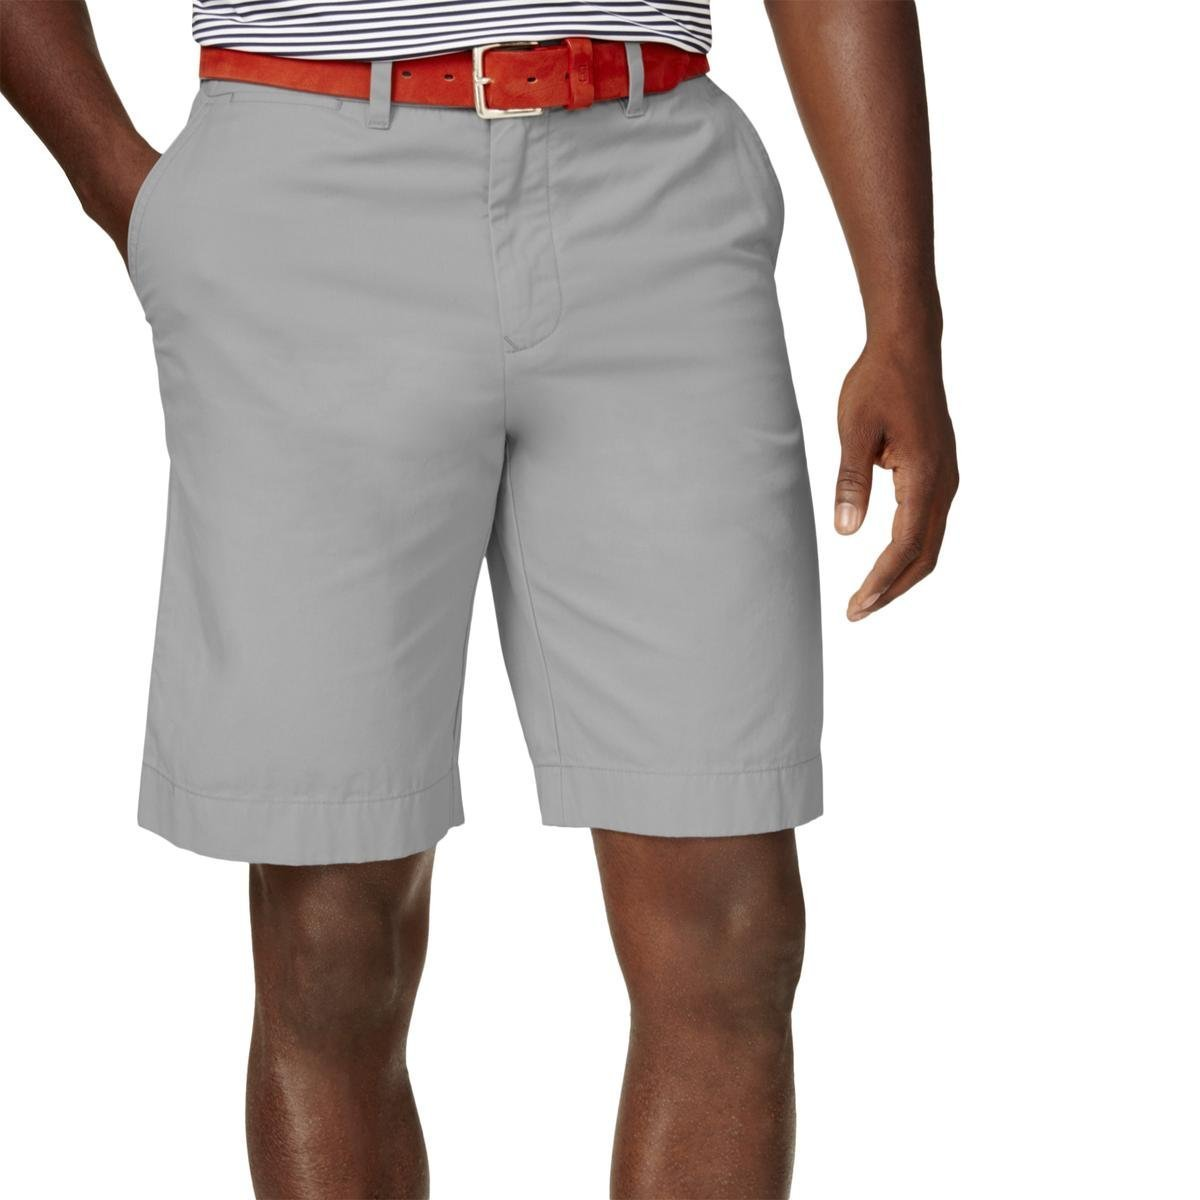 Tommy Hilfiger Mens Classic Fit Lightweight Casual Shorts Gray 40